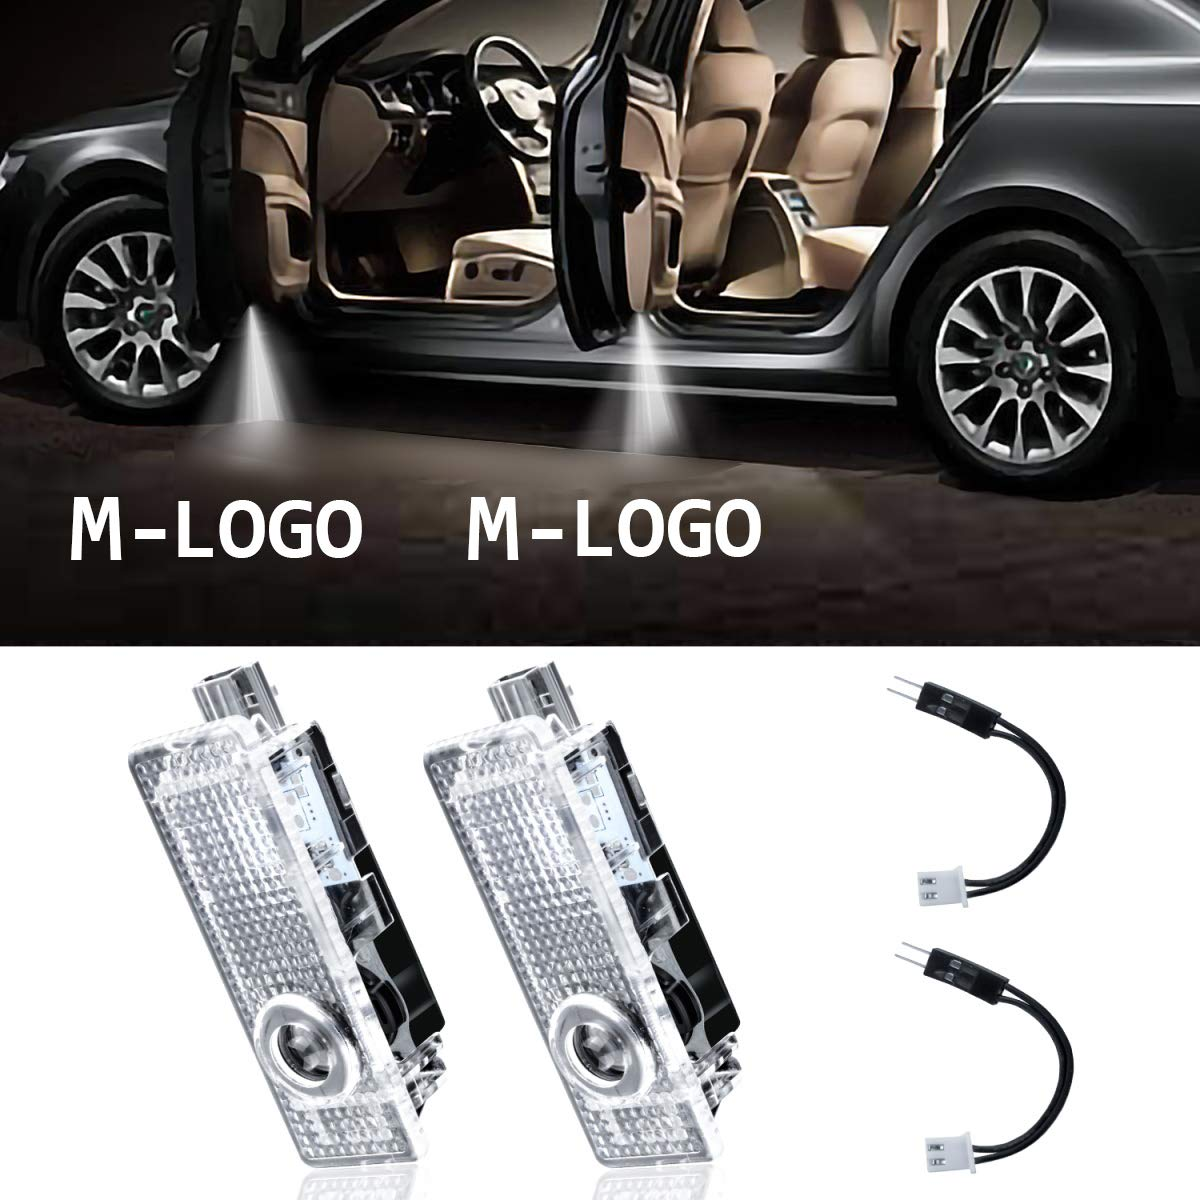 Eogifee Sports LED Car Door Light for The Replacement of BMW Projector Courtesy Laser Ghost Shadow Light Welcome Lights Logo Lamps for The M 3 5 6 7 X Z GT Mini Series(2 Pack)